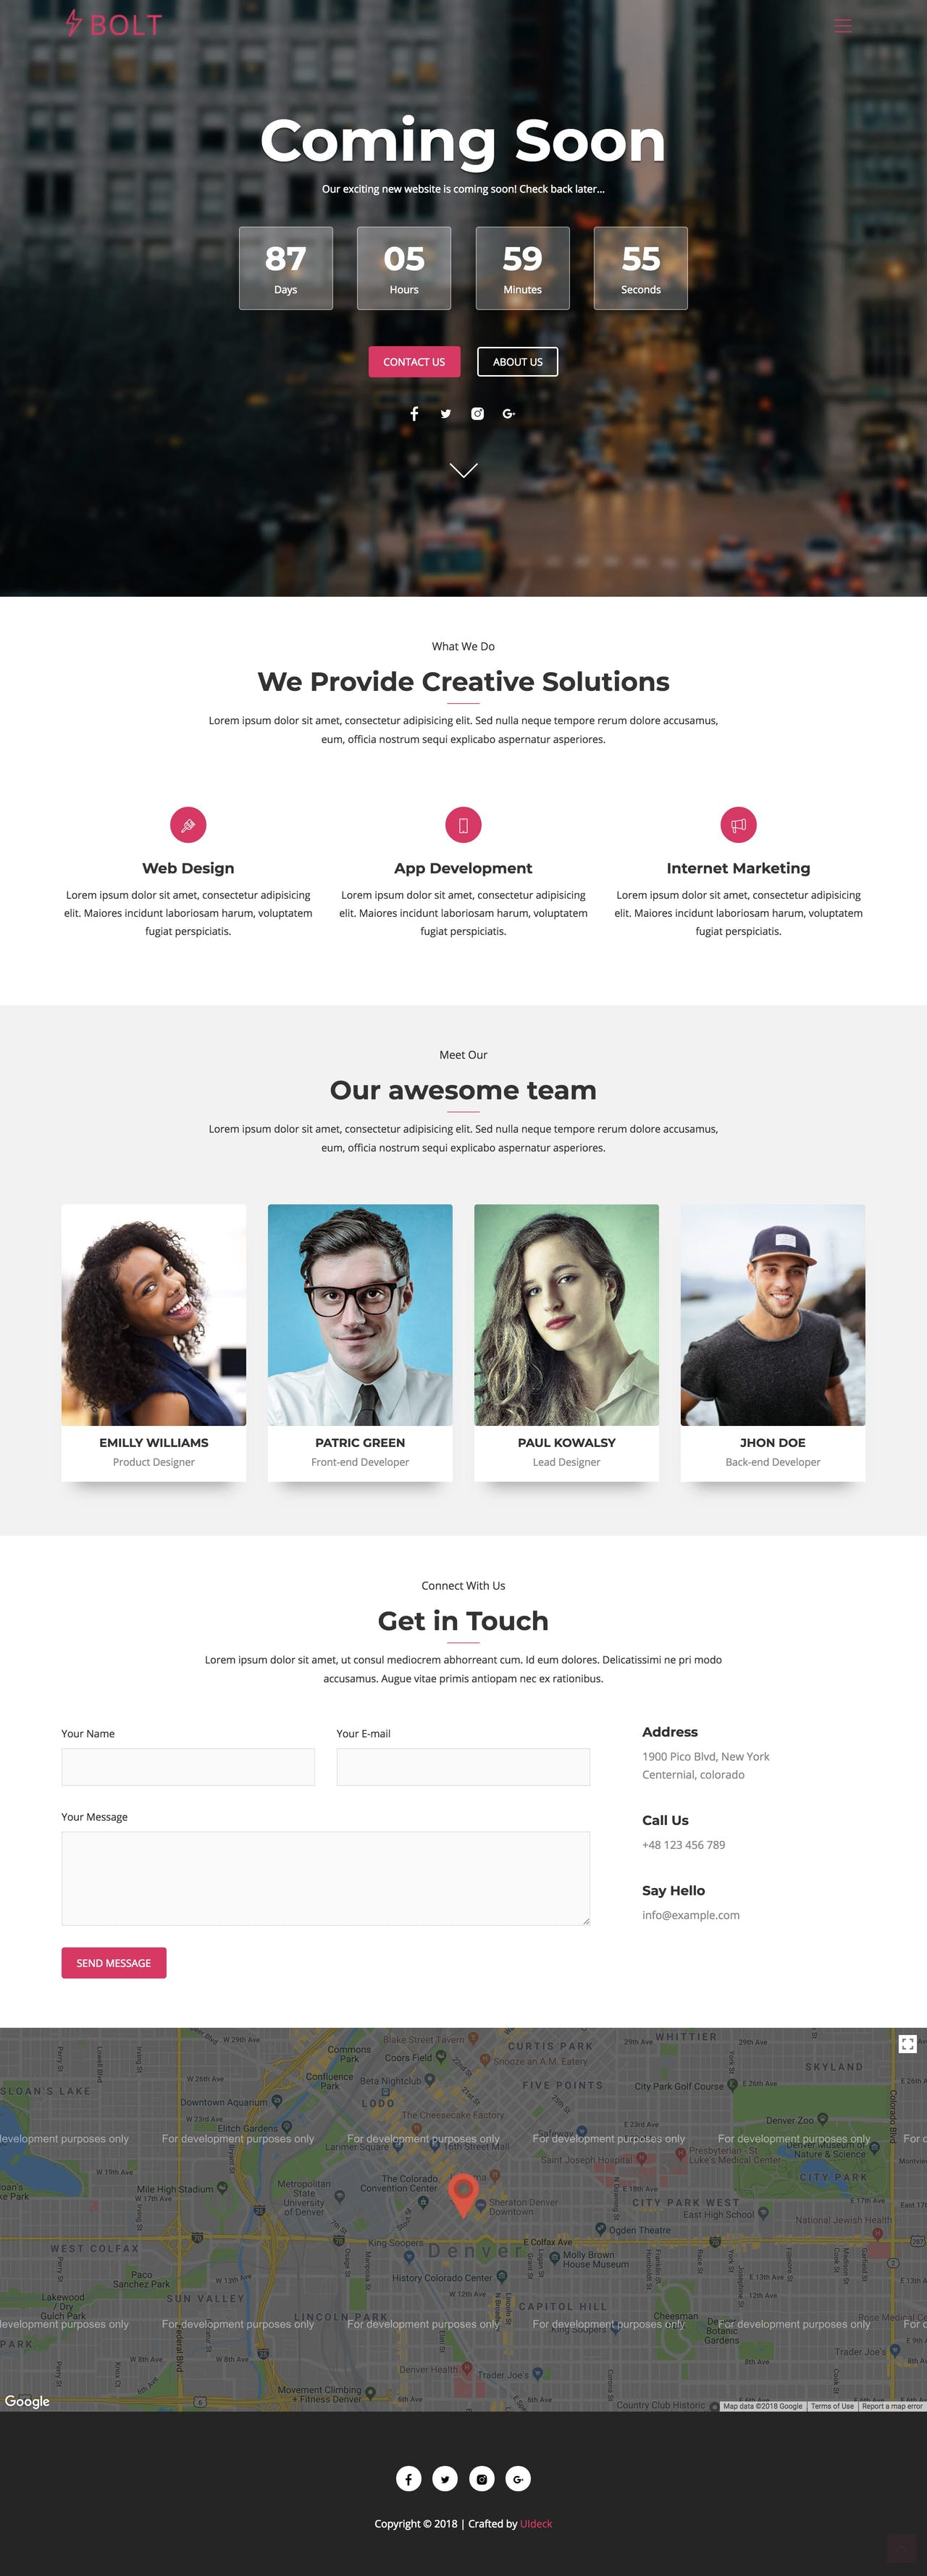 Launching soon HTML template (one page)